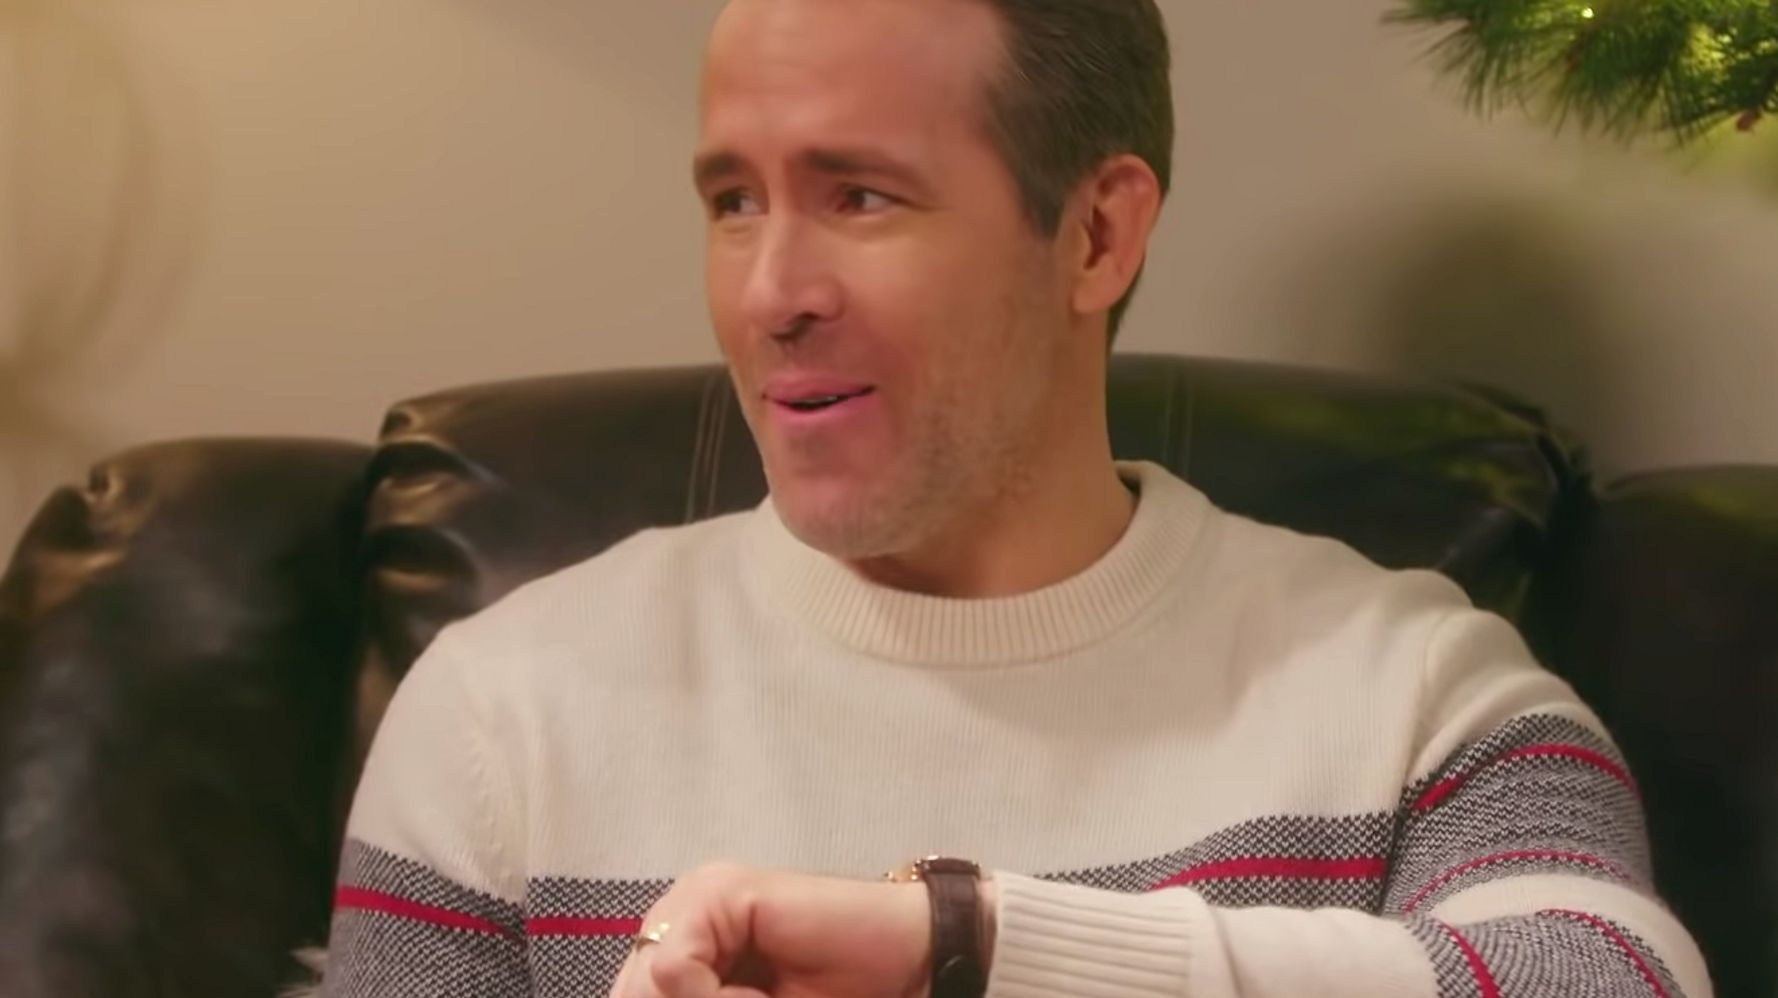 Westlake Legal Group 5dfb6ea22500004071d30b5a Ryan Reynolds Unveils Disgusting Way To Make Holiday Guests Leave In 'Tonight Show' Bit